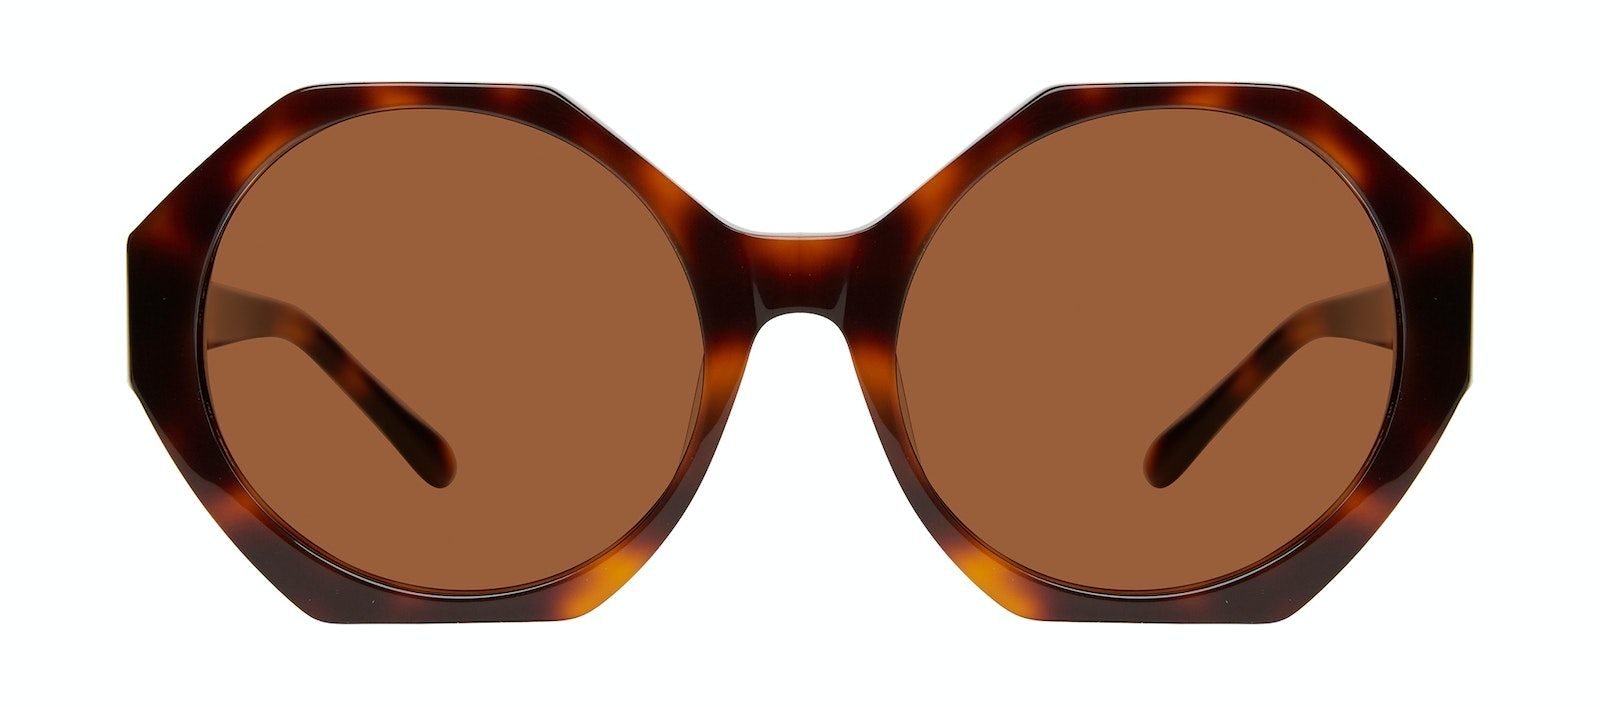 Affordable Fashion Glasses Square Sunglasses Women Zsa Zsa Tortoise Front